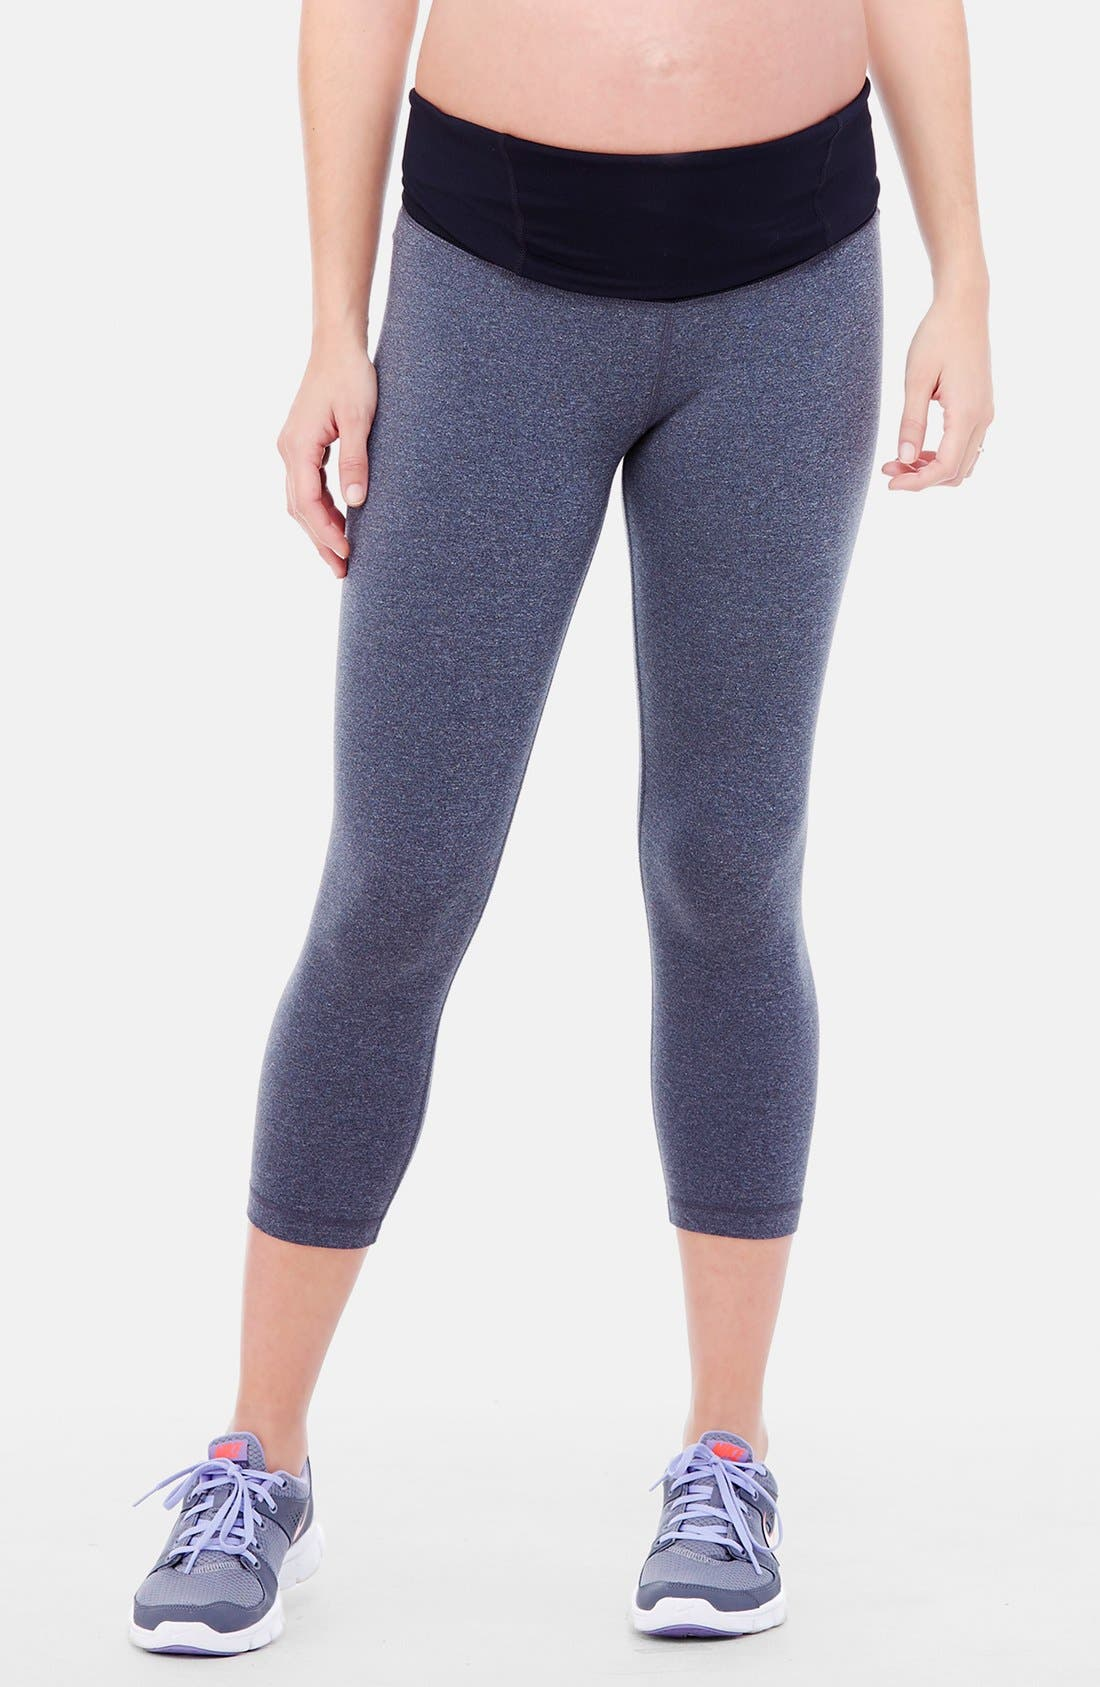 INGRID & ISABEL<SUP>®</SUP>, Active Maternity Capri Pants with Crossover Panel, Alternate thumbnail 2, color, DARK HEATHER GREY